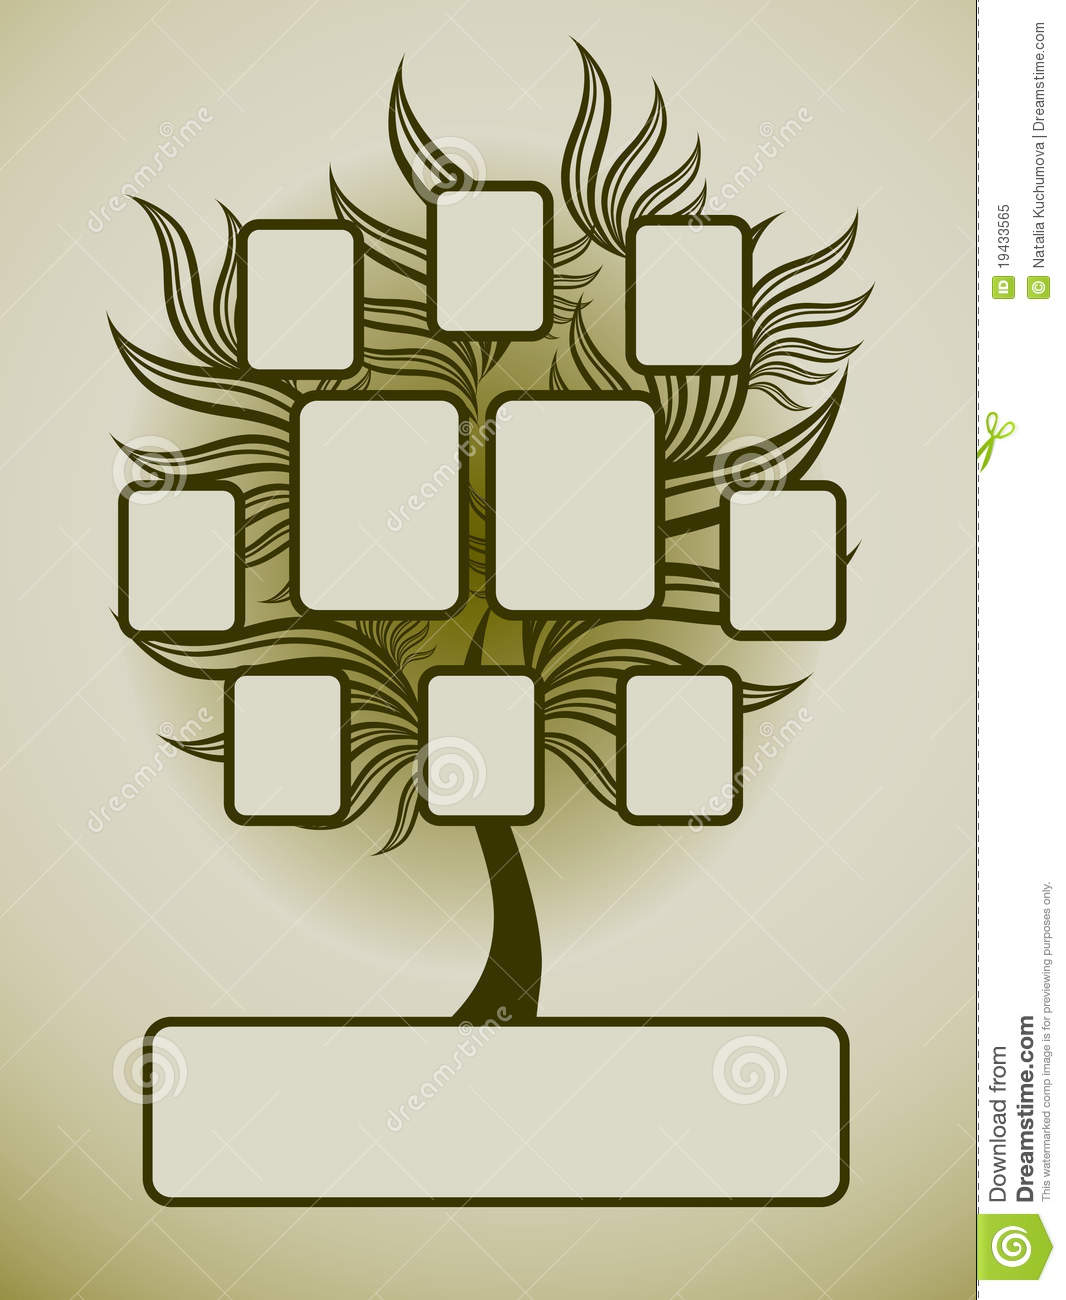 vector family tree design with family tree design ideas - Family Tree Design Ideas